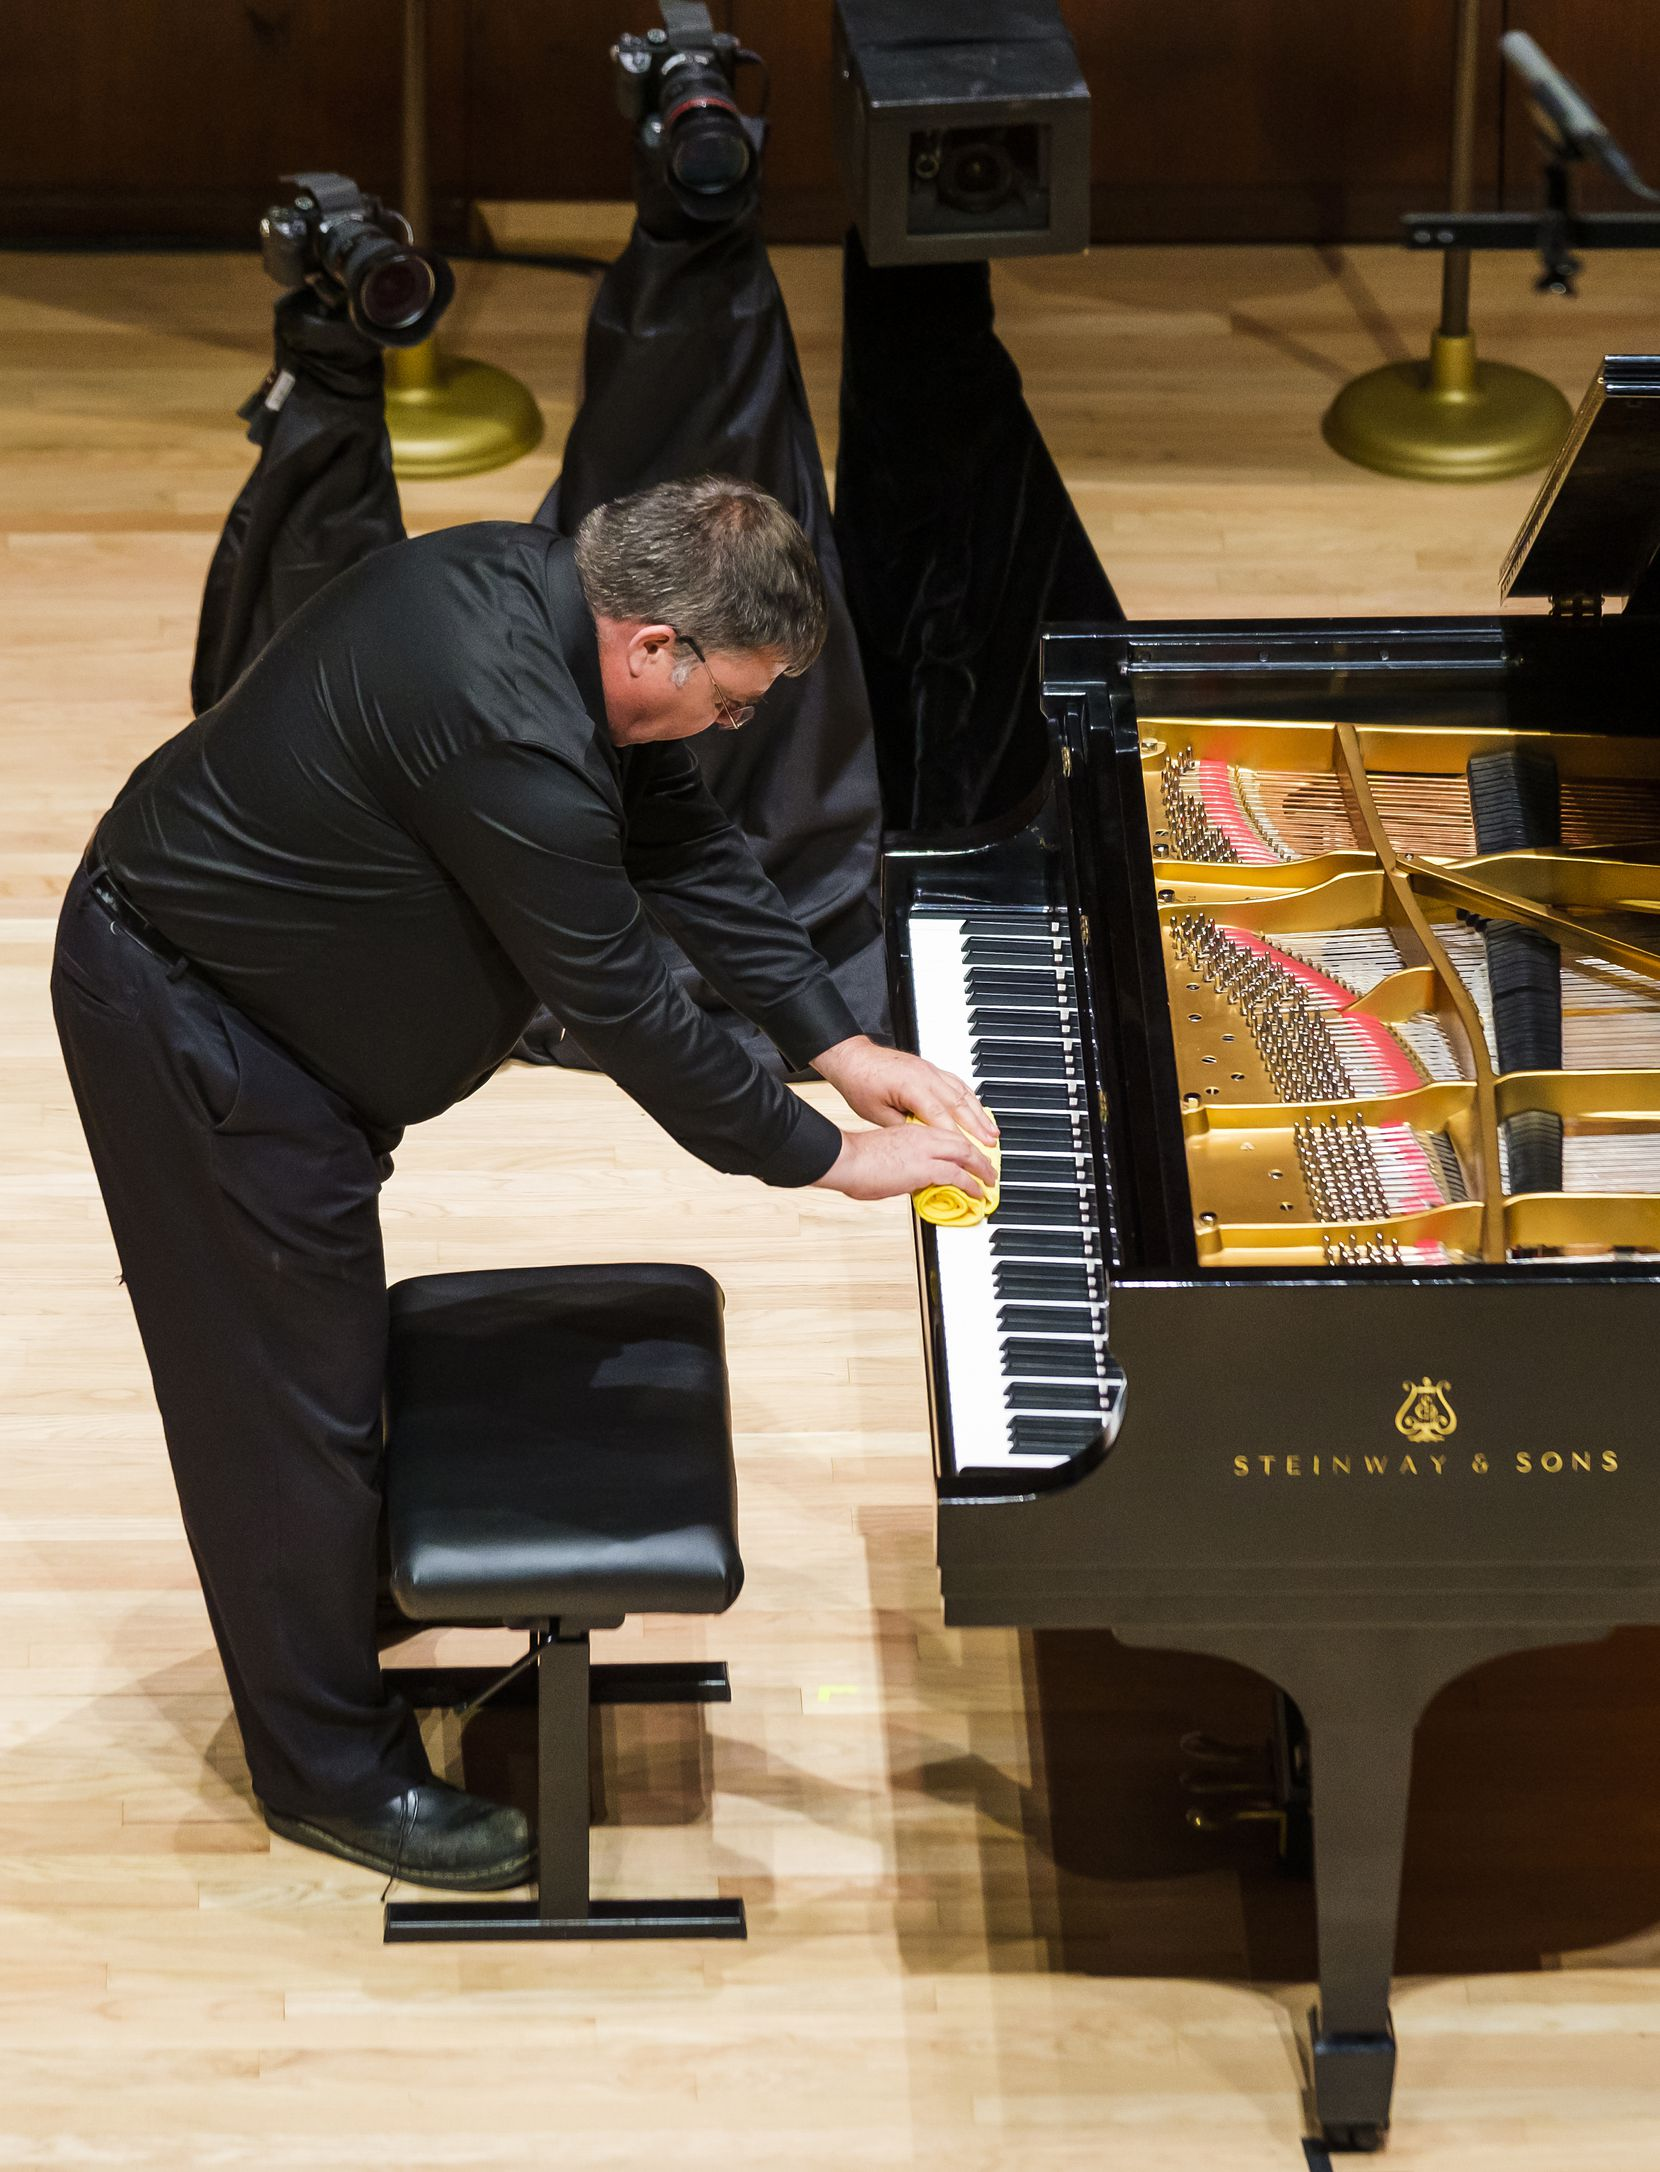 Michael McNicholas wipes off the keys of the piano between performances during the quarterfinals of The Cliburn Junior International Piano Competition at SMU's Caruth Auditorium in 2019.